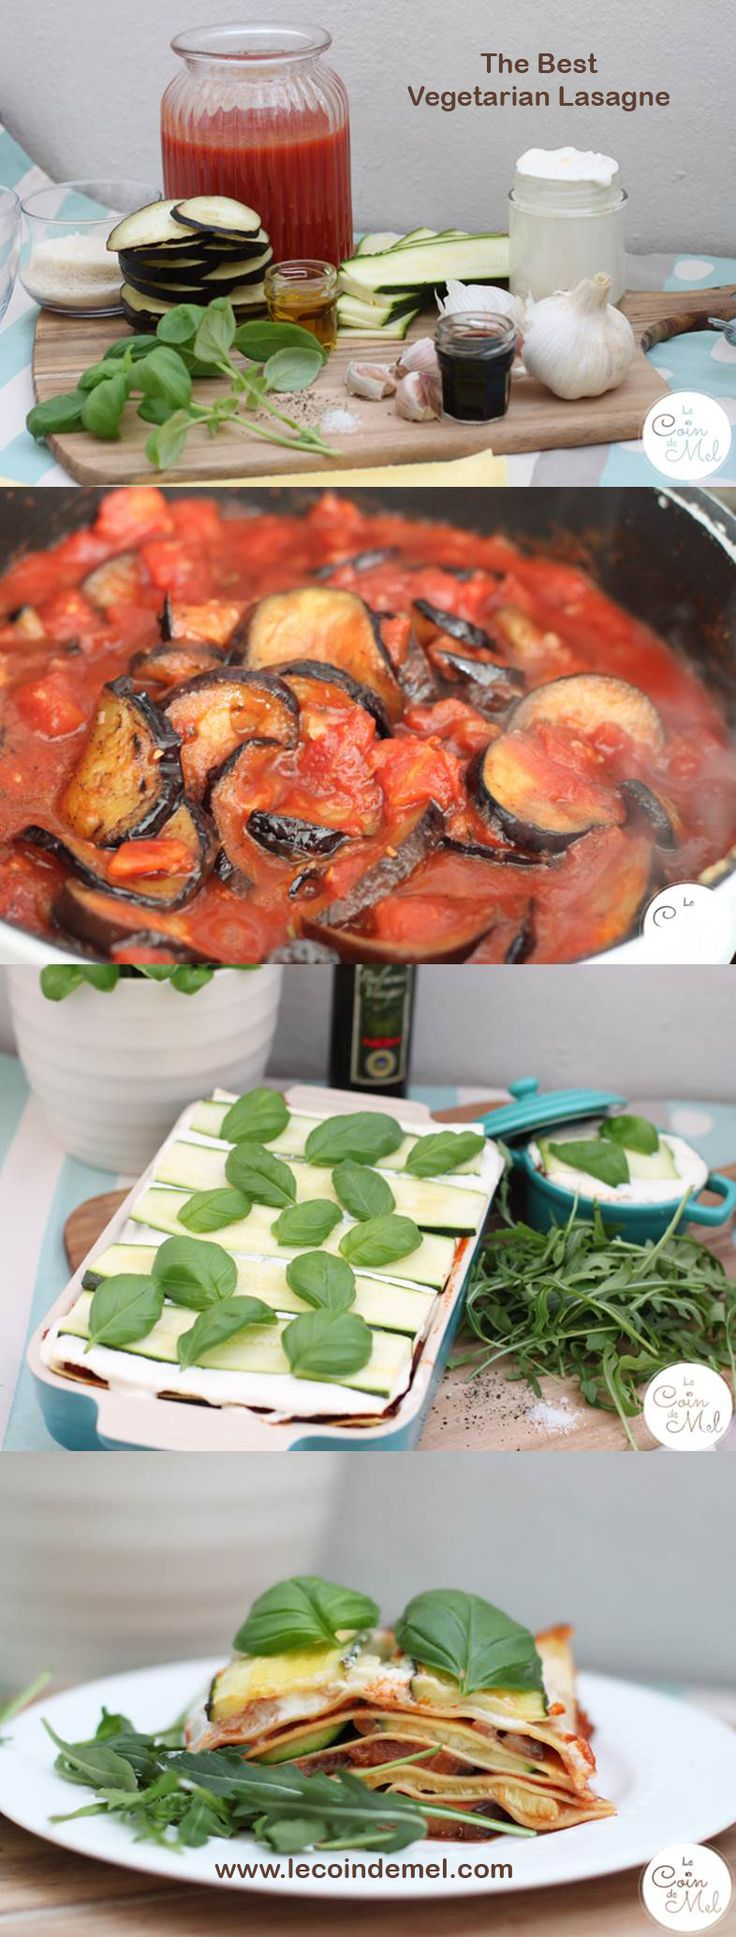 This is the only vegetarian lasagne recipe you will ever need! The first time I tried it, I had portions. It's that good! Oh, and there is an egg and gluten-free alternative, too! Love veggie lasagna!